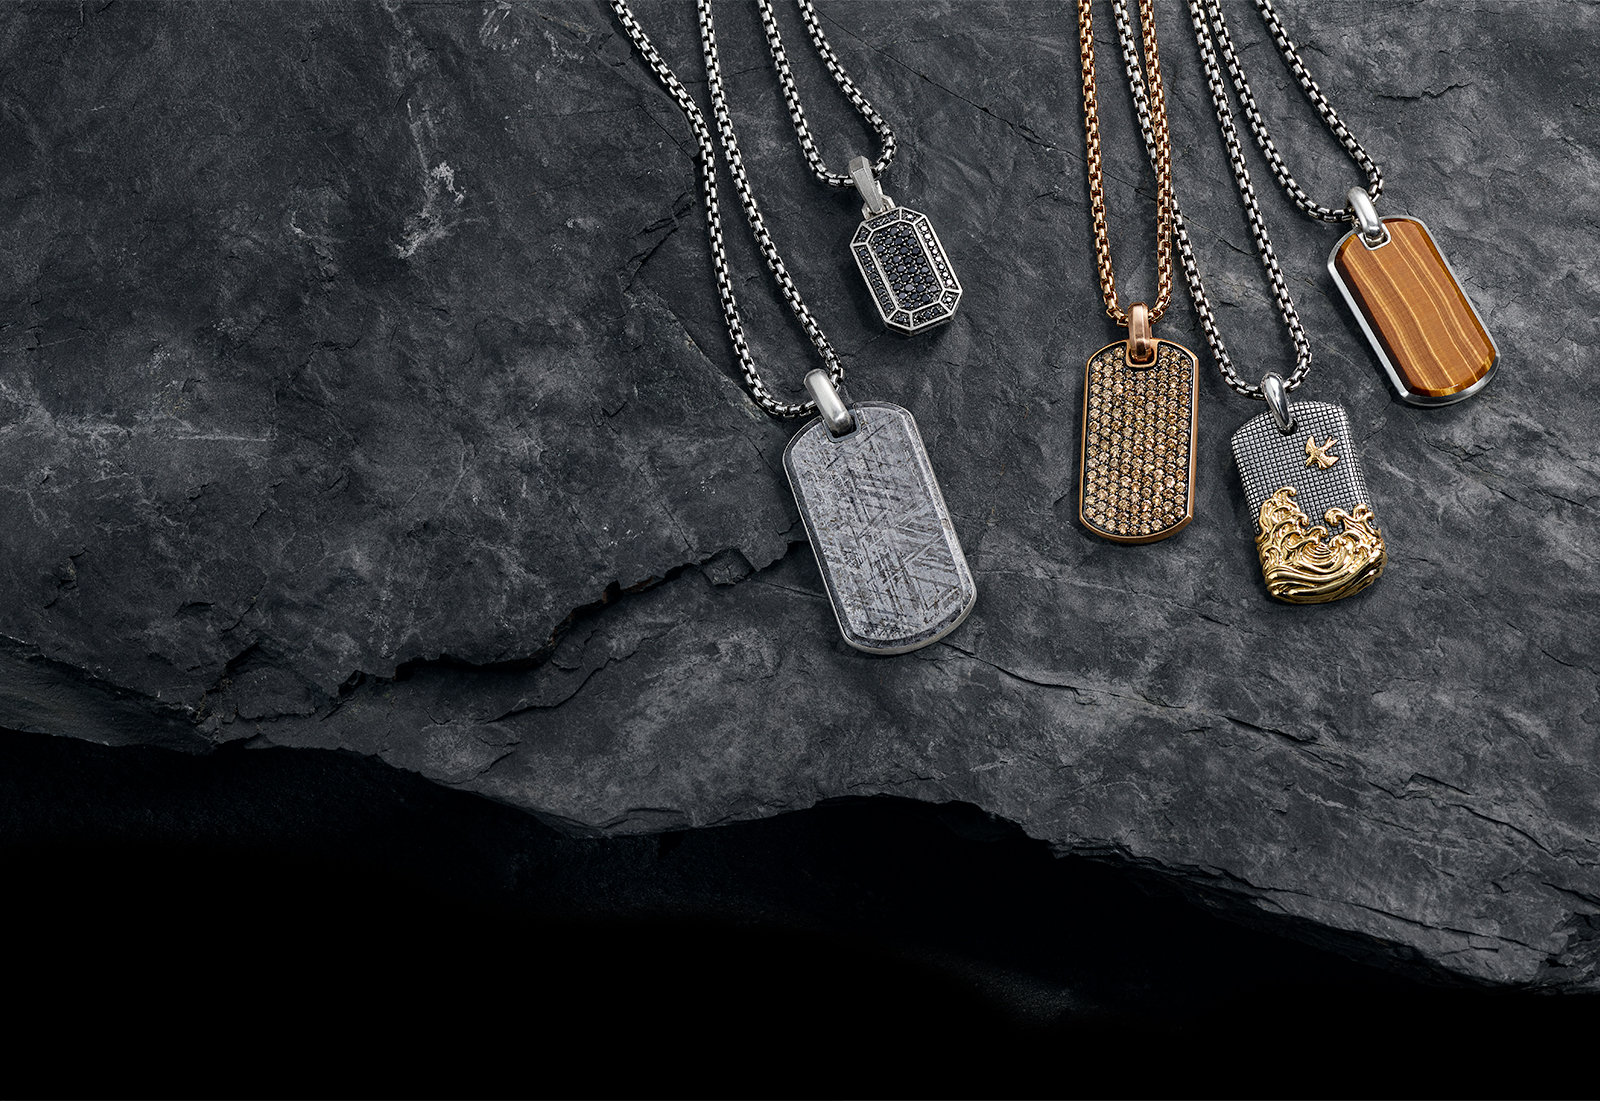 David Yurman Meteorite, Pavé, Waves and Exotic Stone tags in sterling silver with meteorite, pavé black diamonds, 18K yellow gold and cat's eye, or in 18K rose gold with cognac diamonds against a stone.